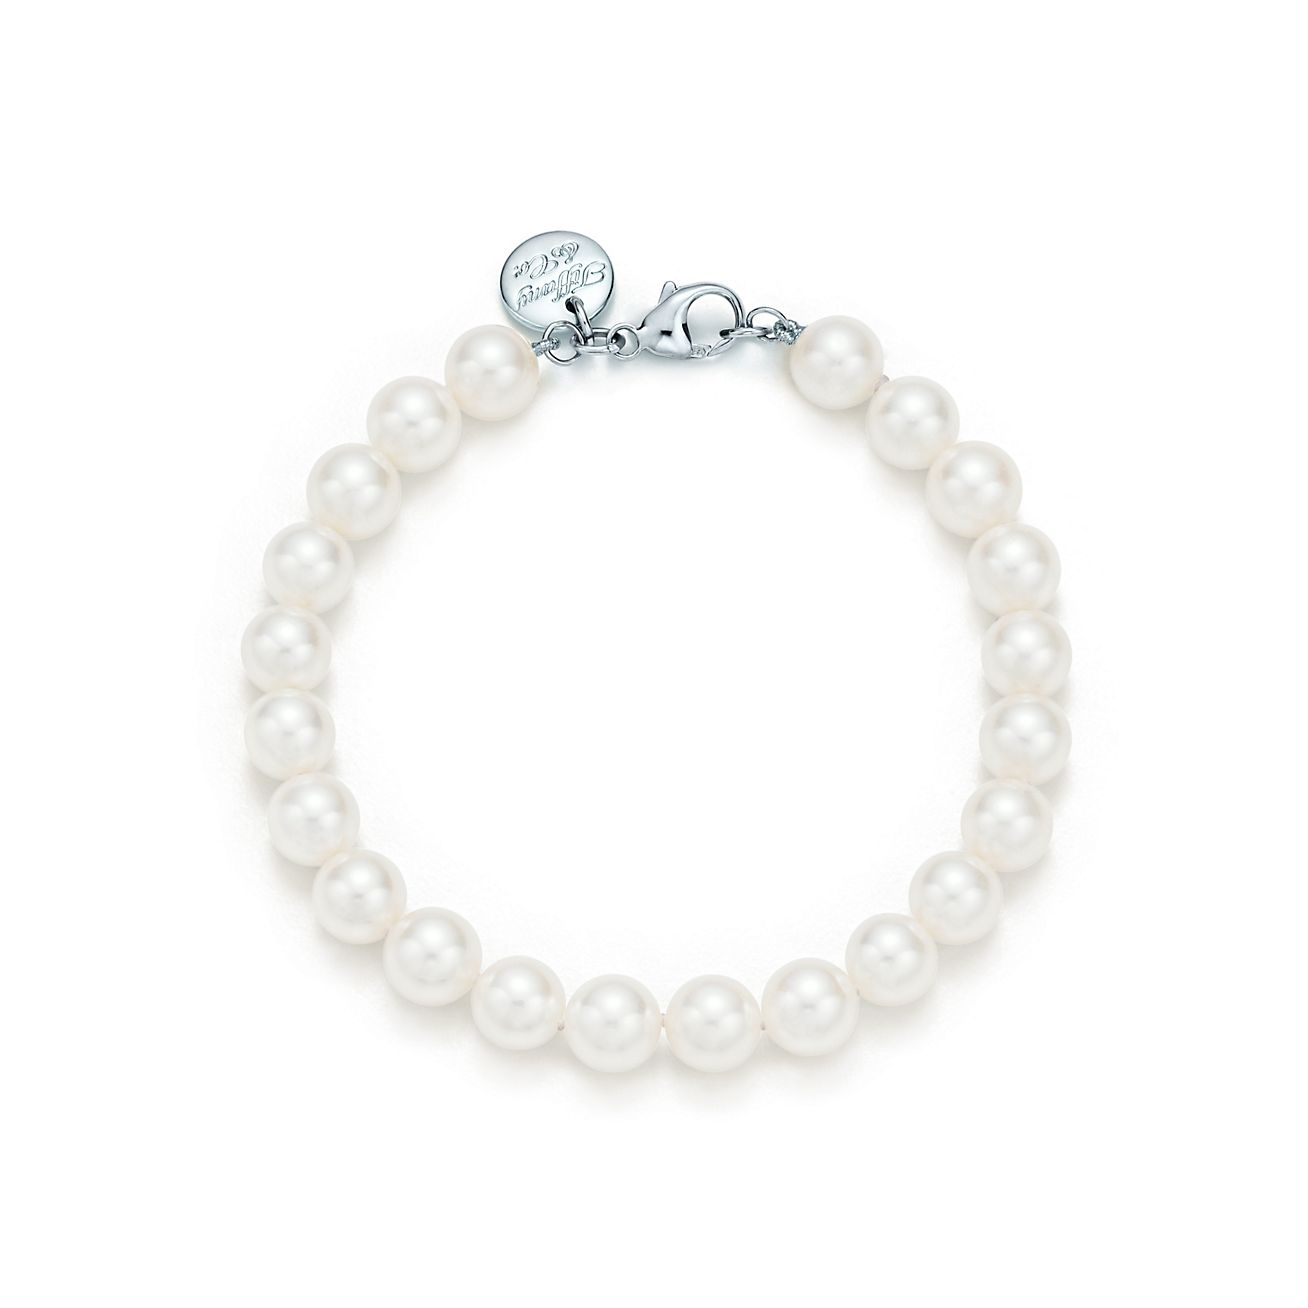 Tiffany Essential Pearls Bracelet